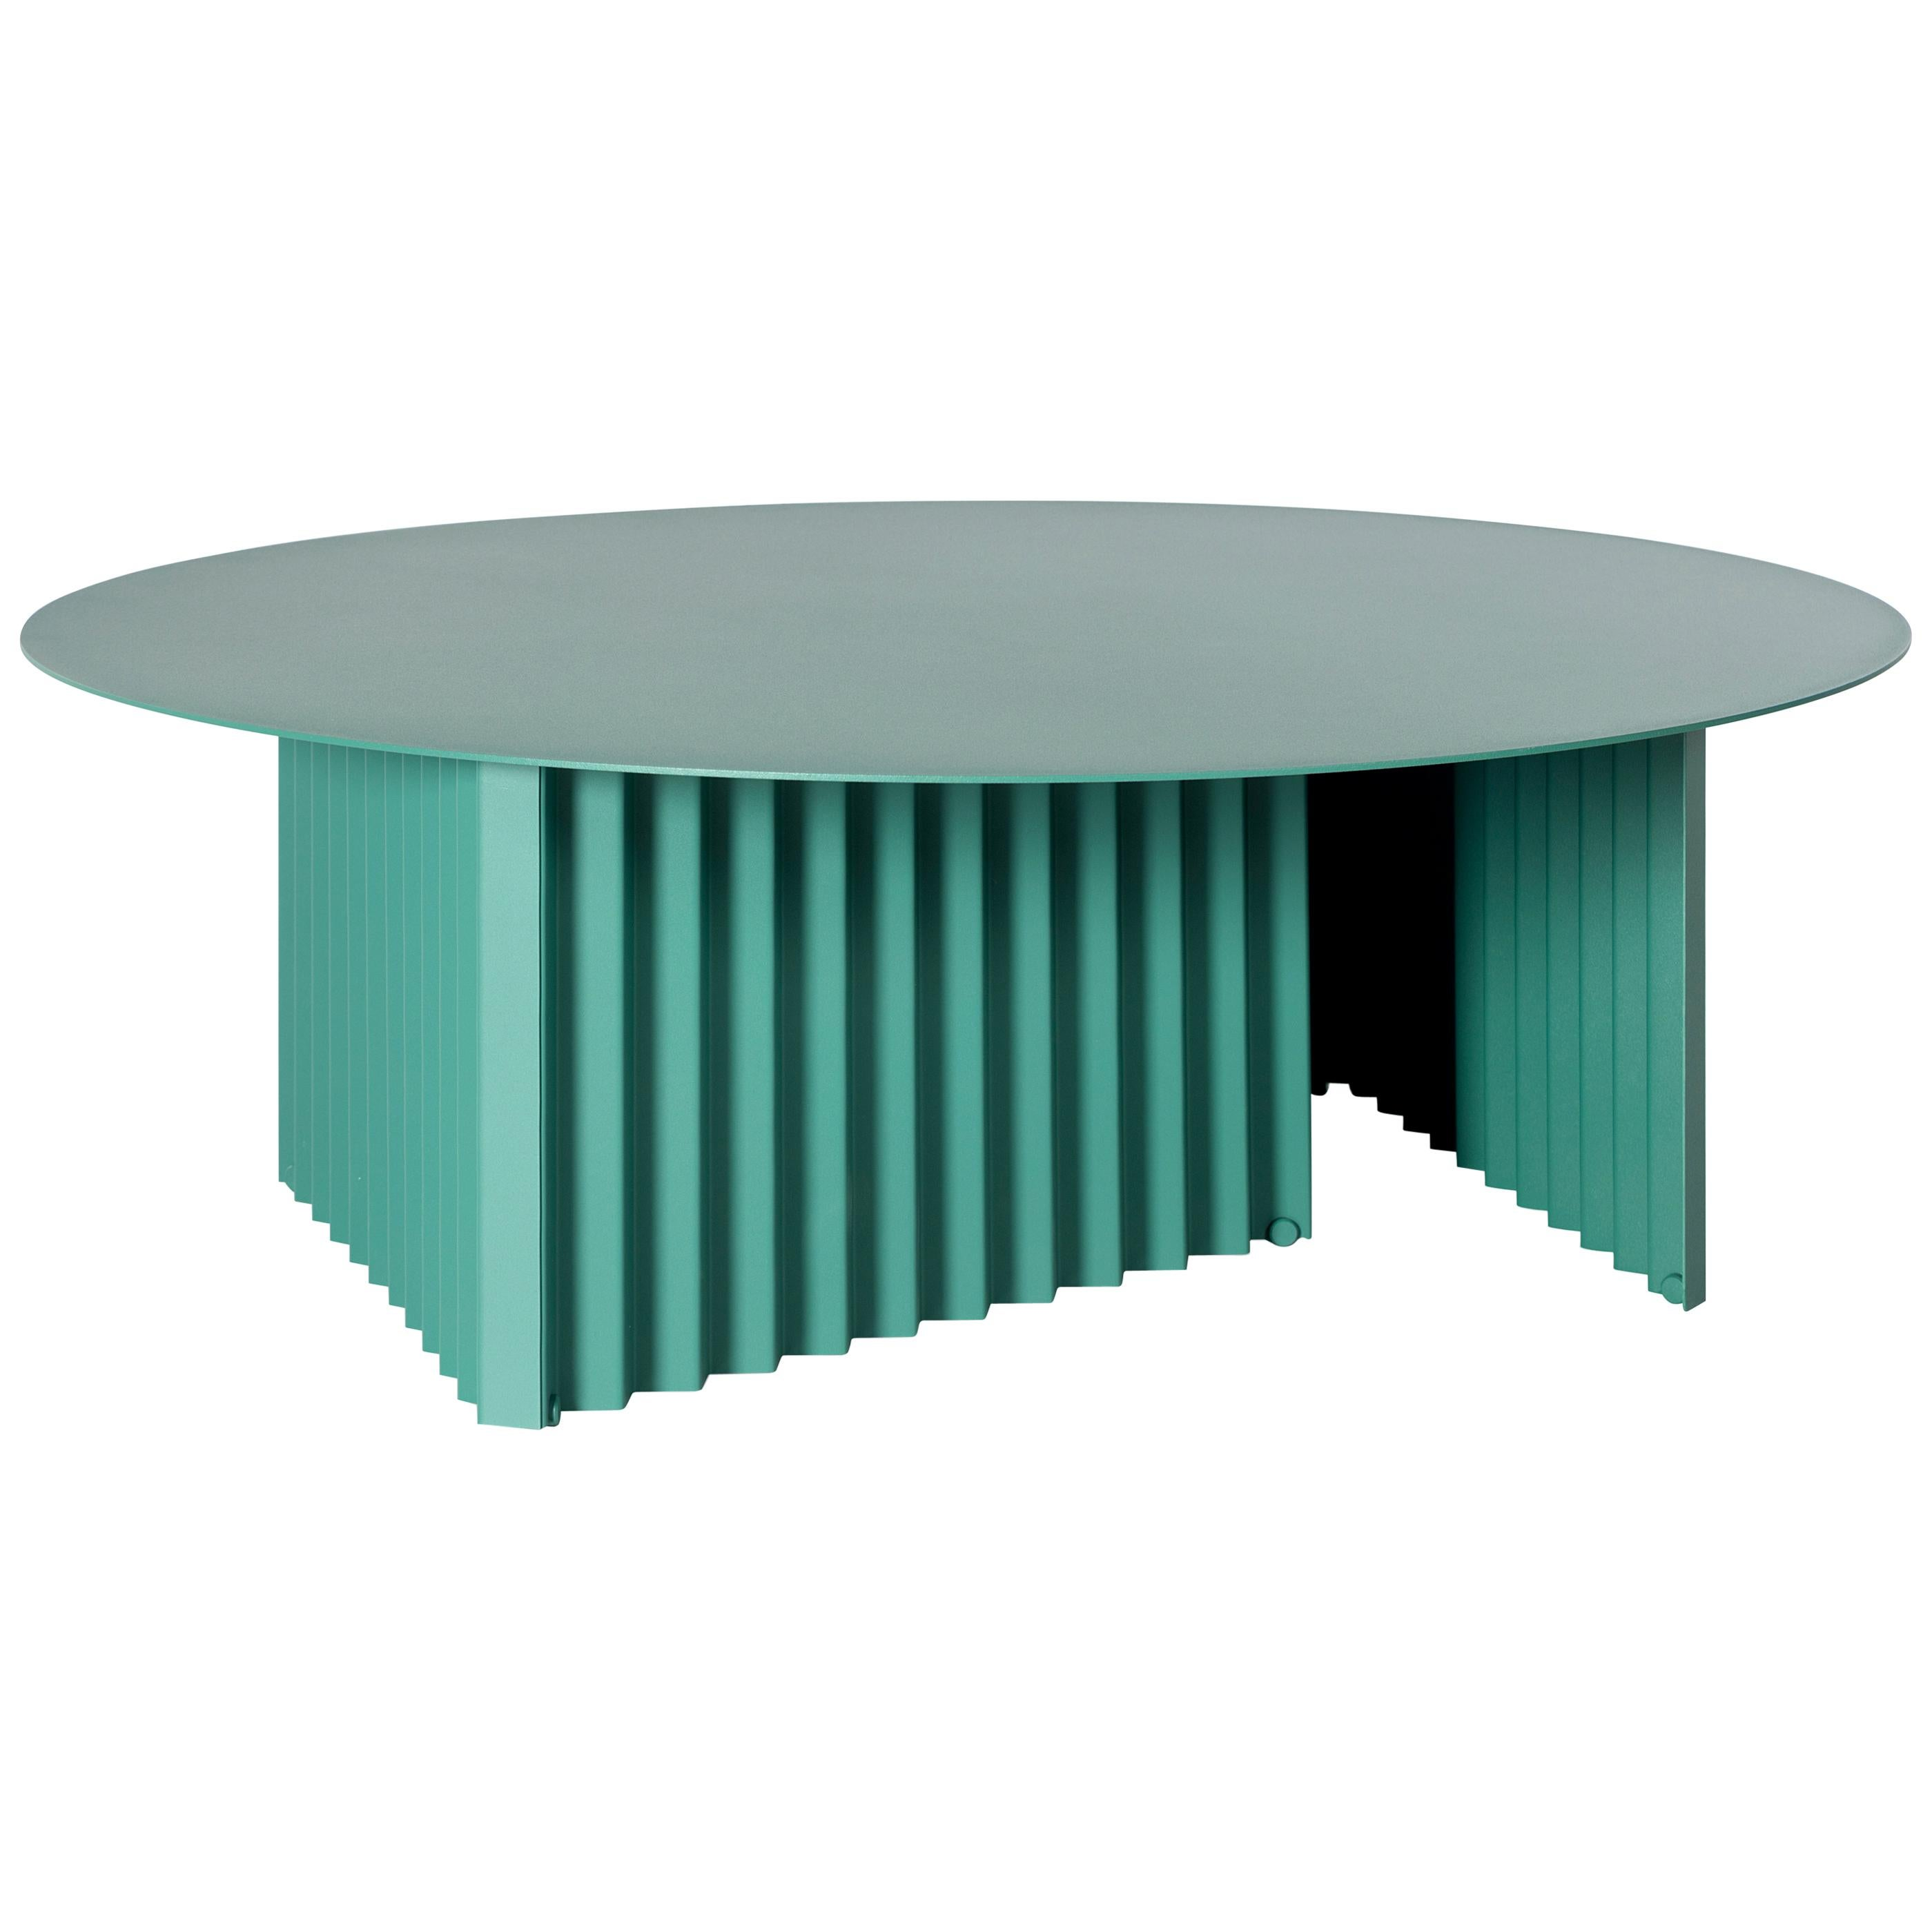 RS Barcelona Plec Round Large Table in Green Metal by A.P.O.